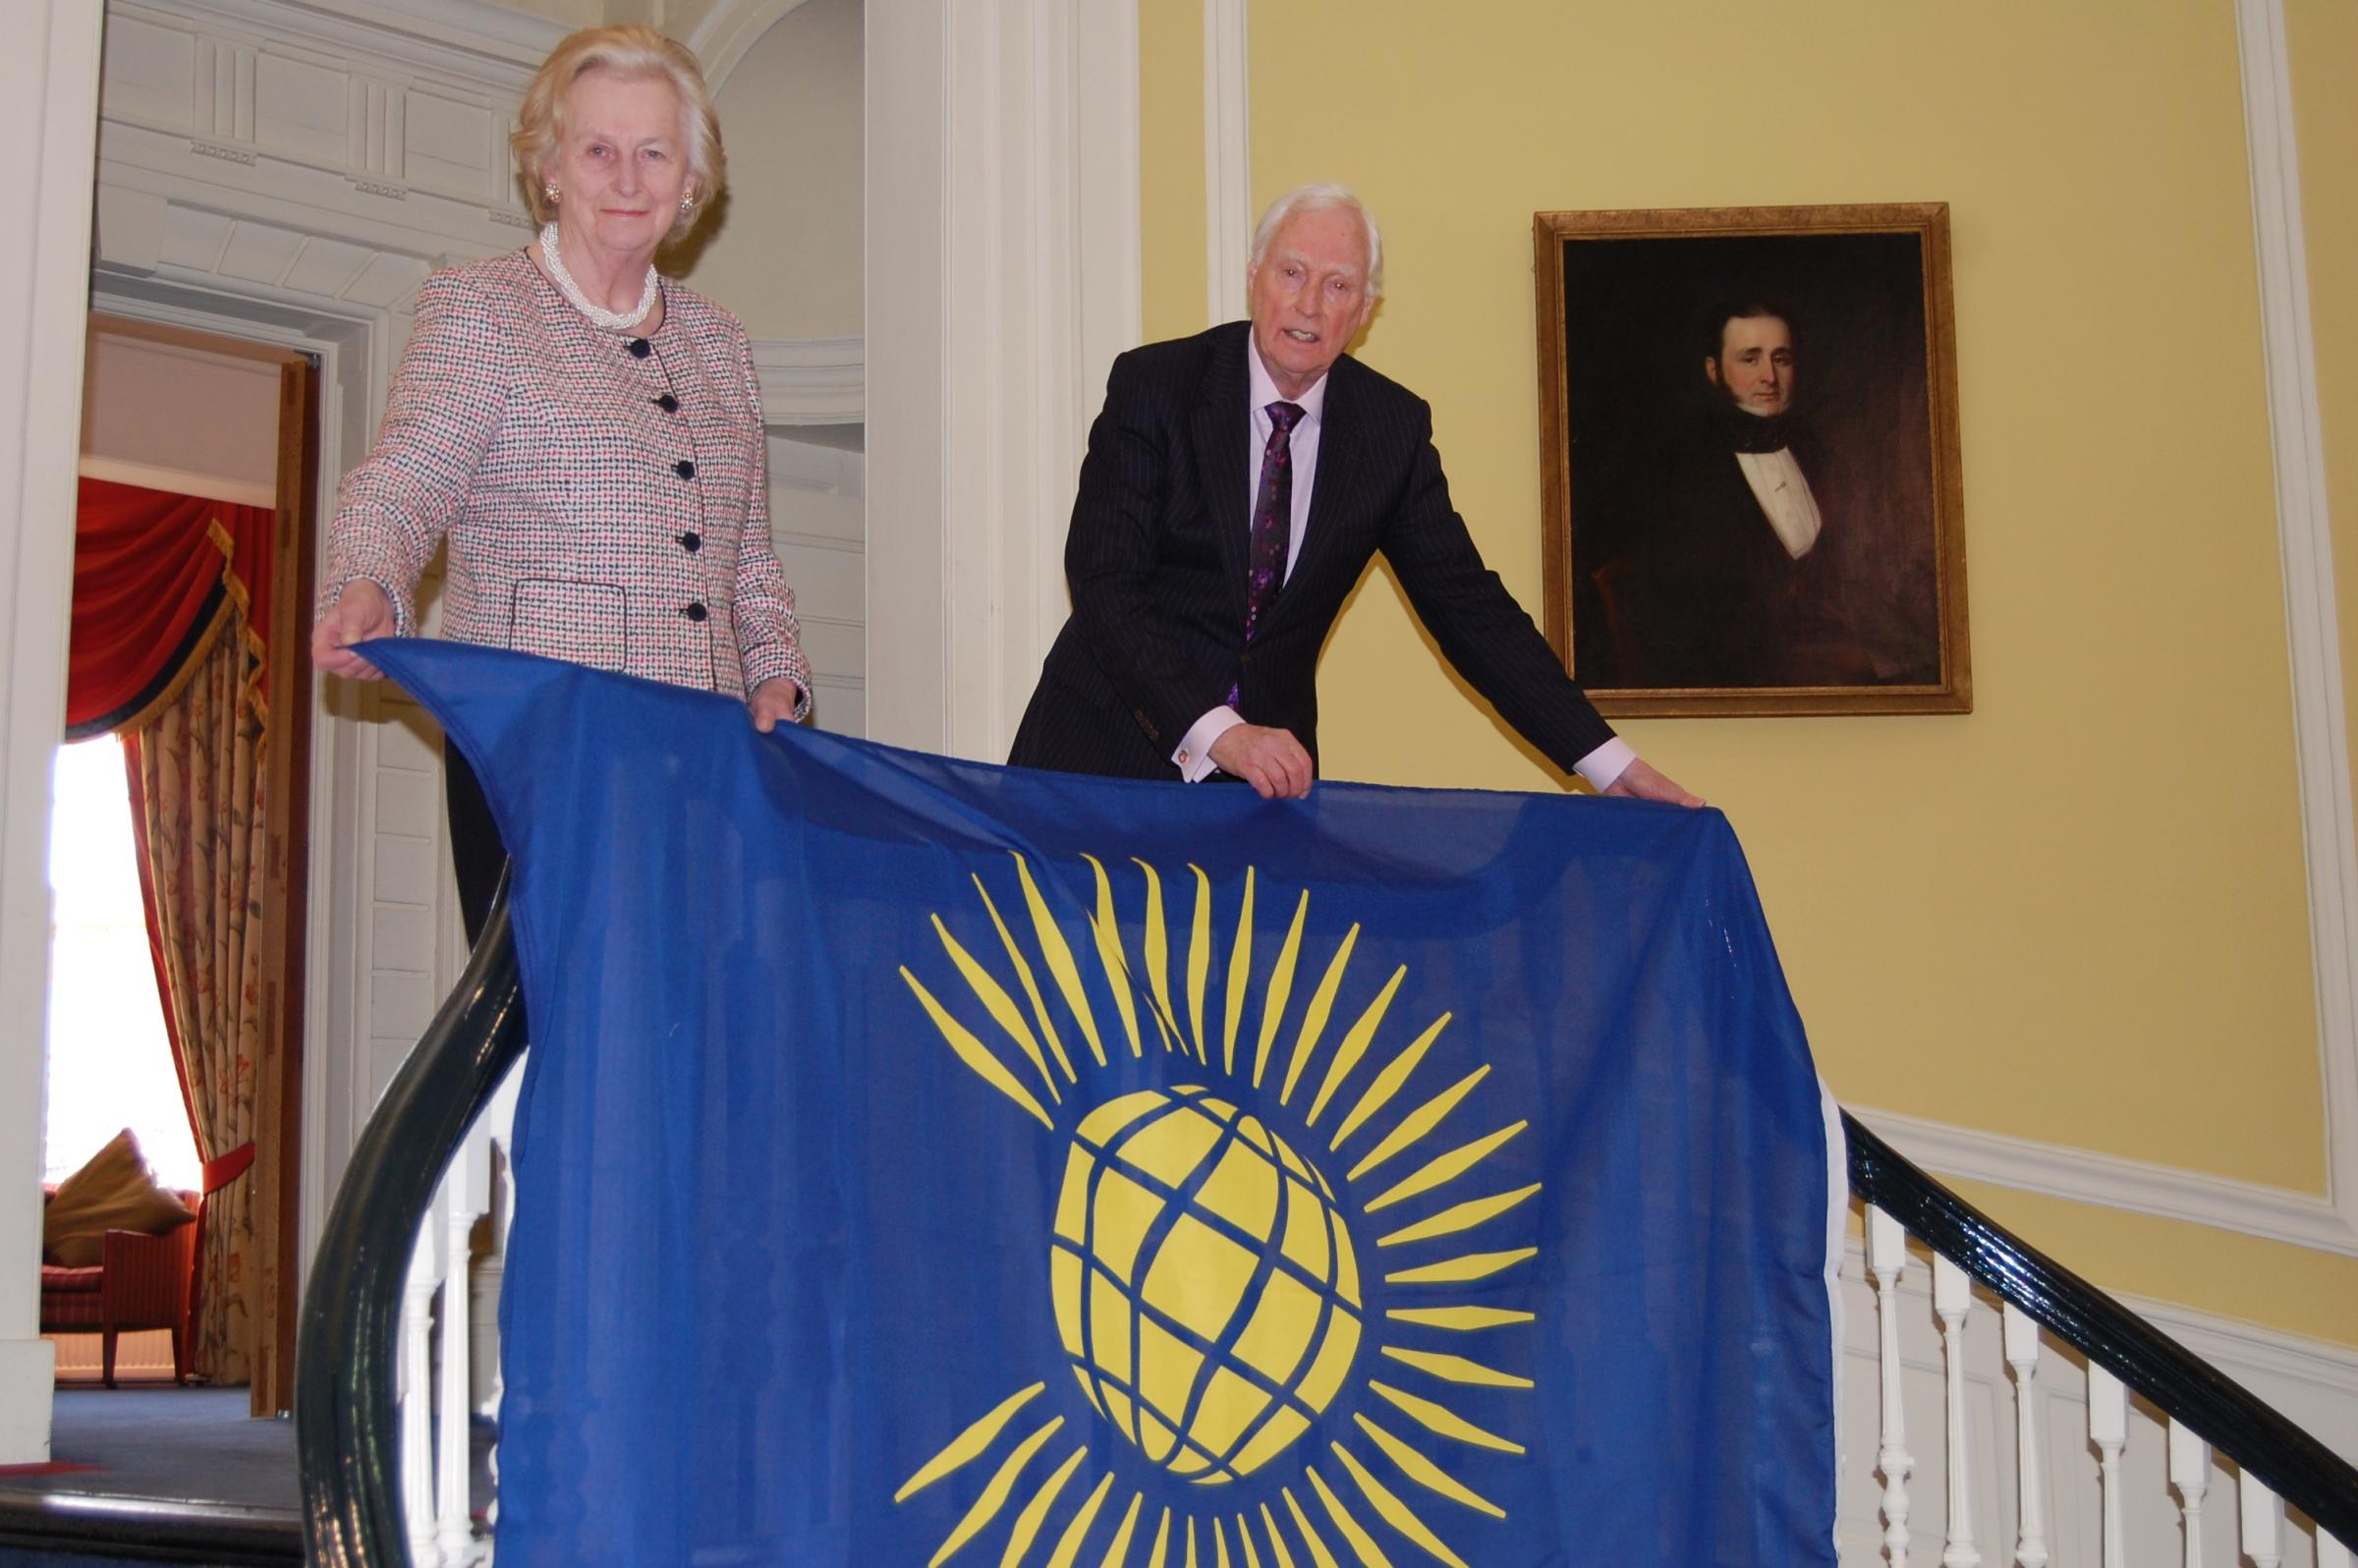 Lord-Lieutenant of Hampshire, Dame Mary Fagan and Hampshire County Council chairman Cllr Ken Thornber with the Commonwealth flag.